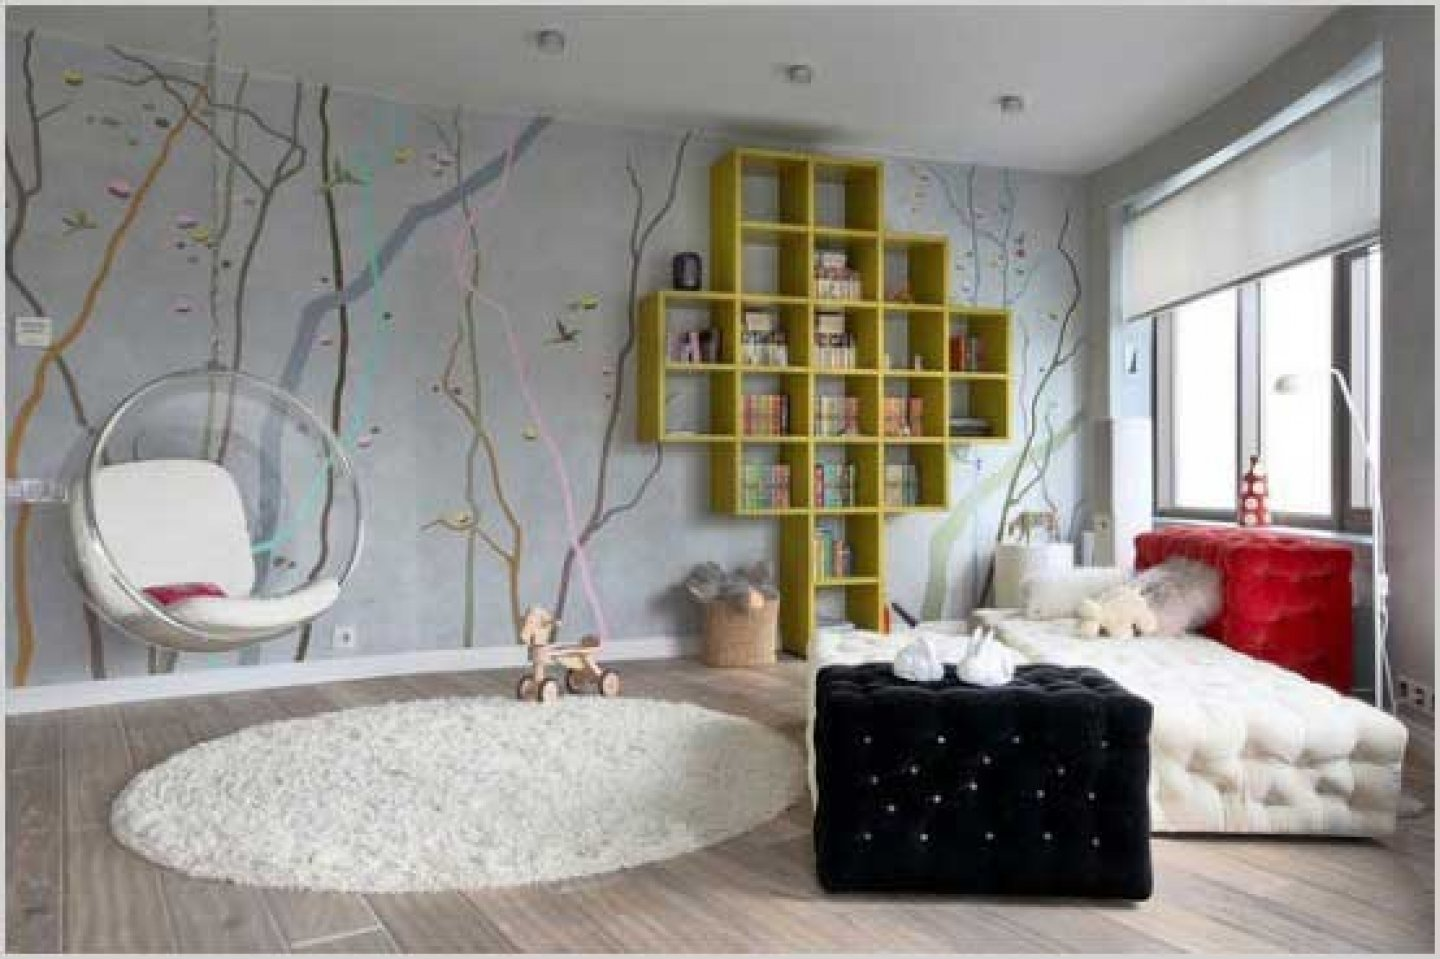 10 Most Recommended Ideas For Teenage Girls Rooms cool teen bedrooms ideas 4 2020